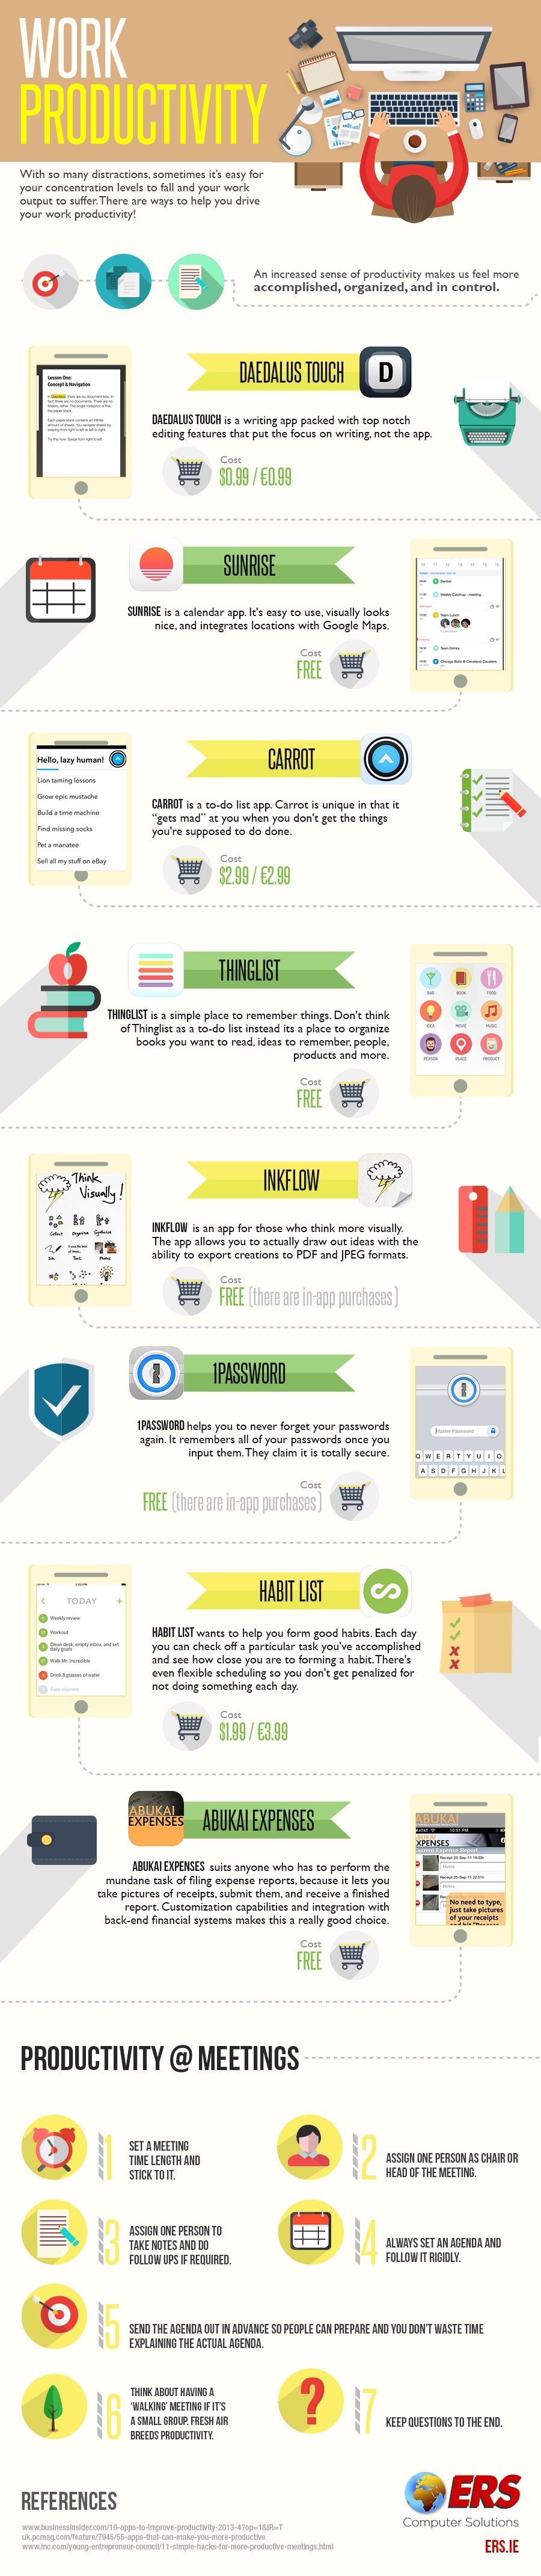 Productivity-at-Work-Infographic-2